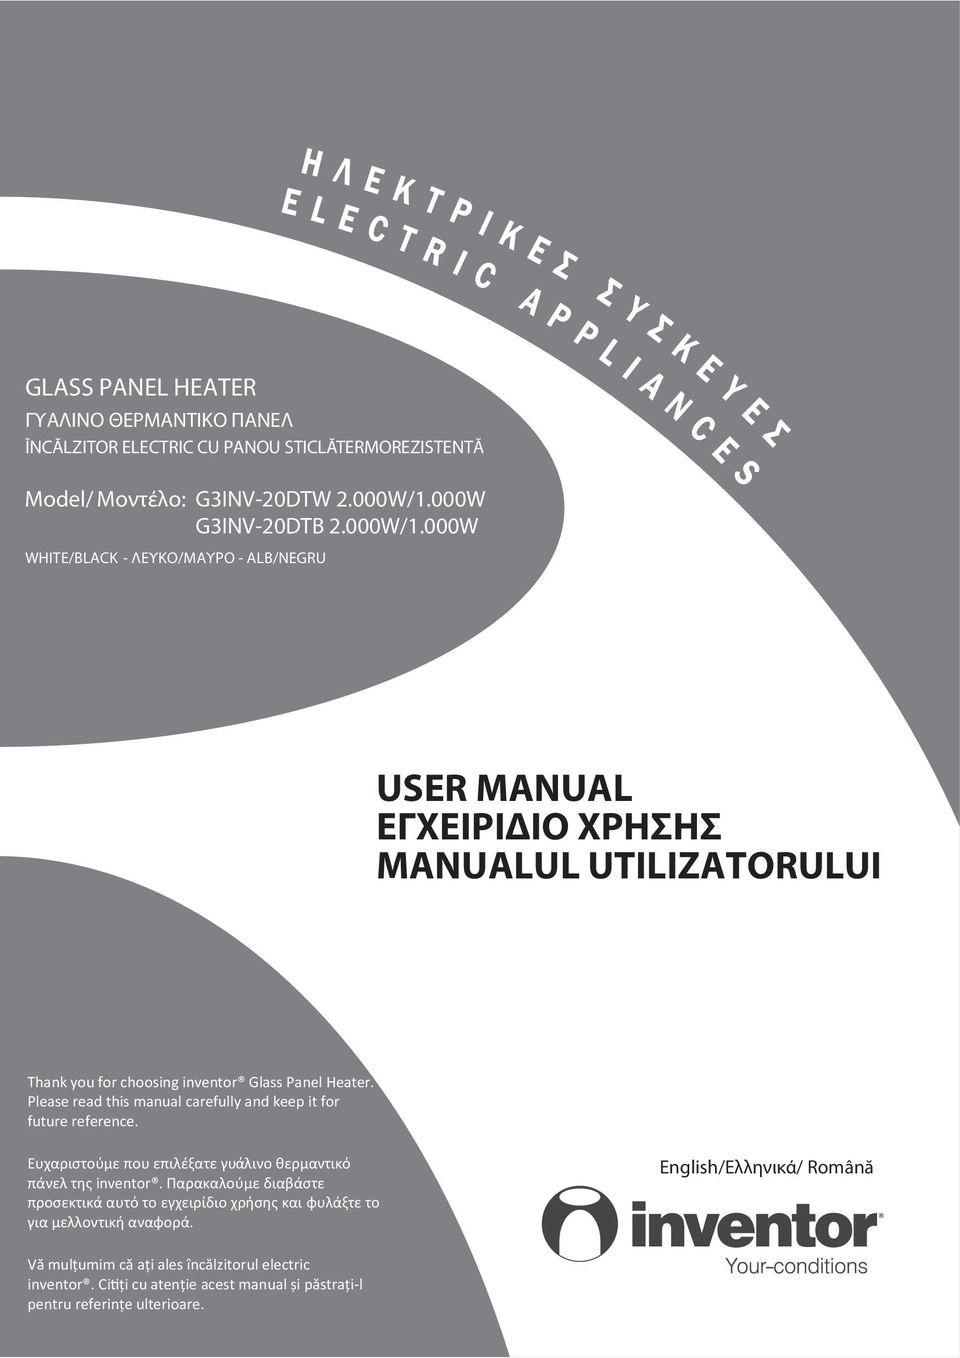 Please read this manual carefully and keep it for future reference. Ευχαριστούμε που επιλέξατε γυάλινο θερμαντικό πάνελ της inventor.